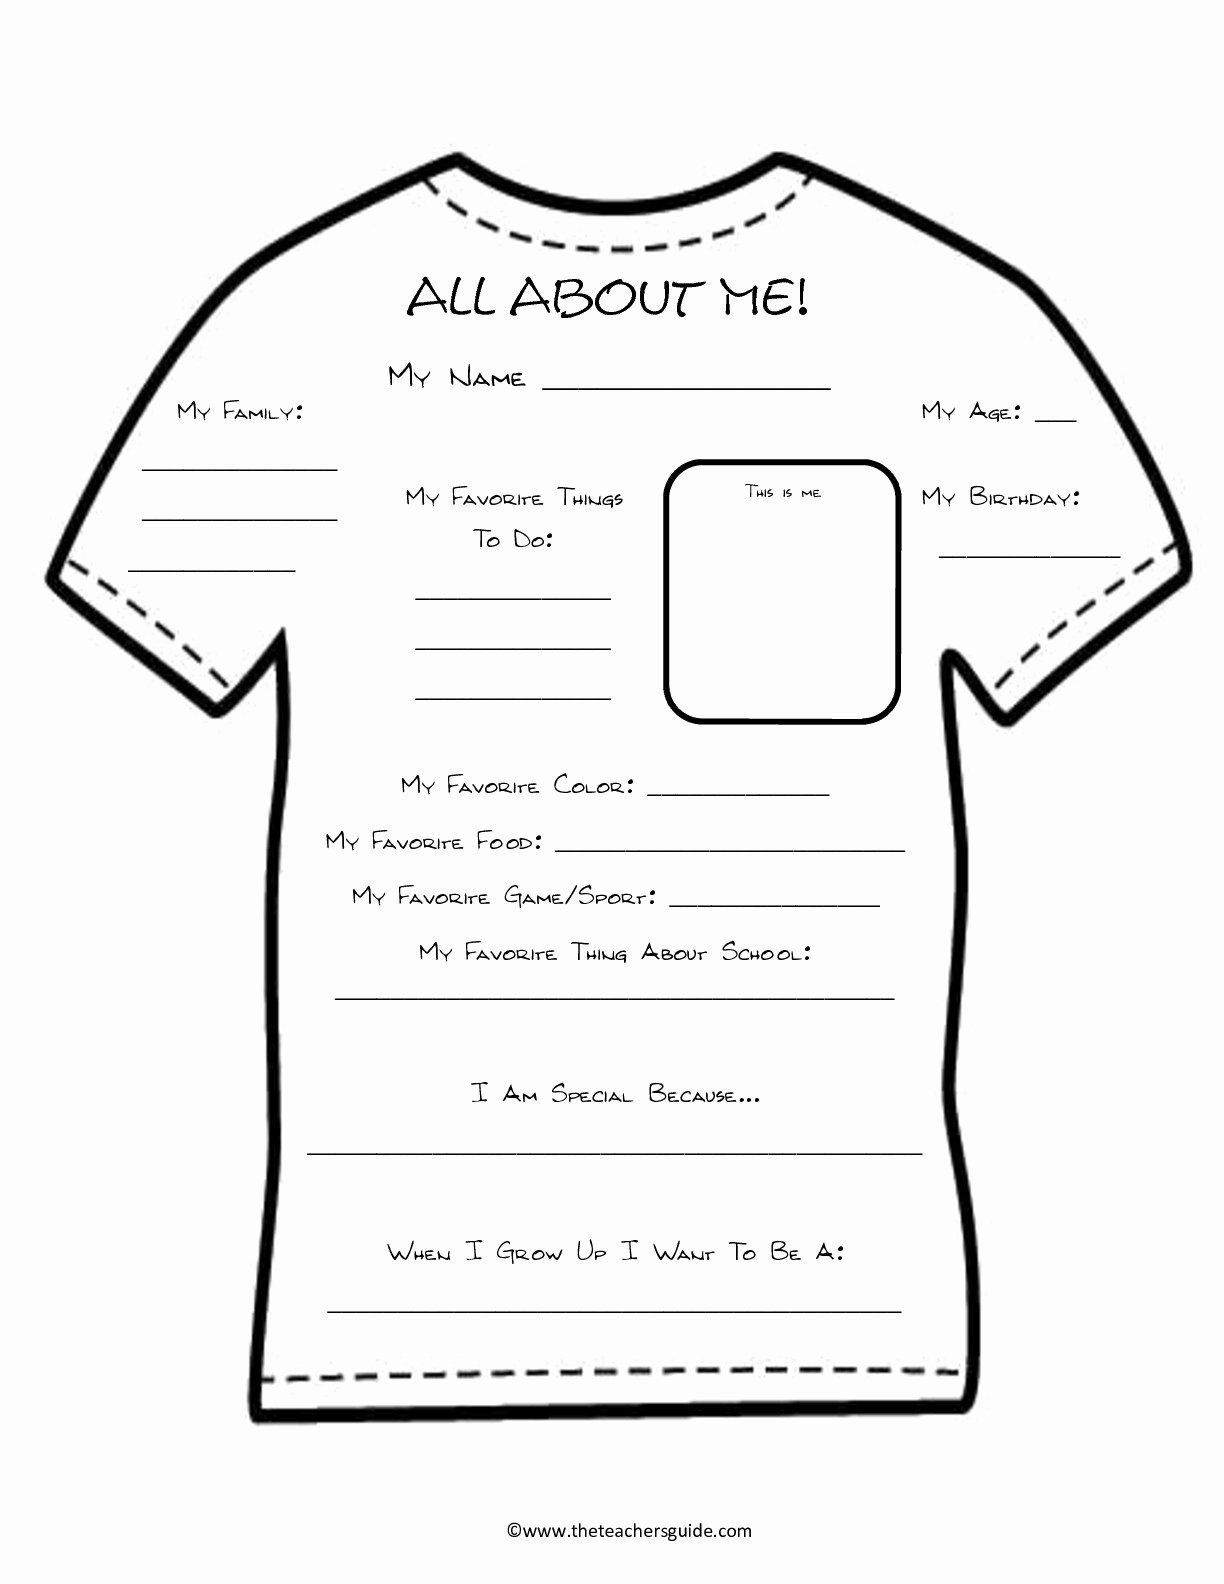 All About Me Printable Worksheet Luxury All About Me